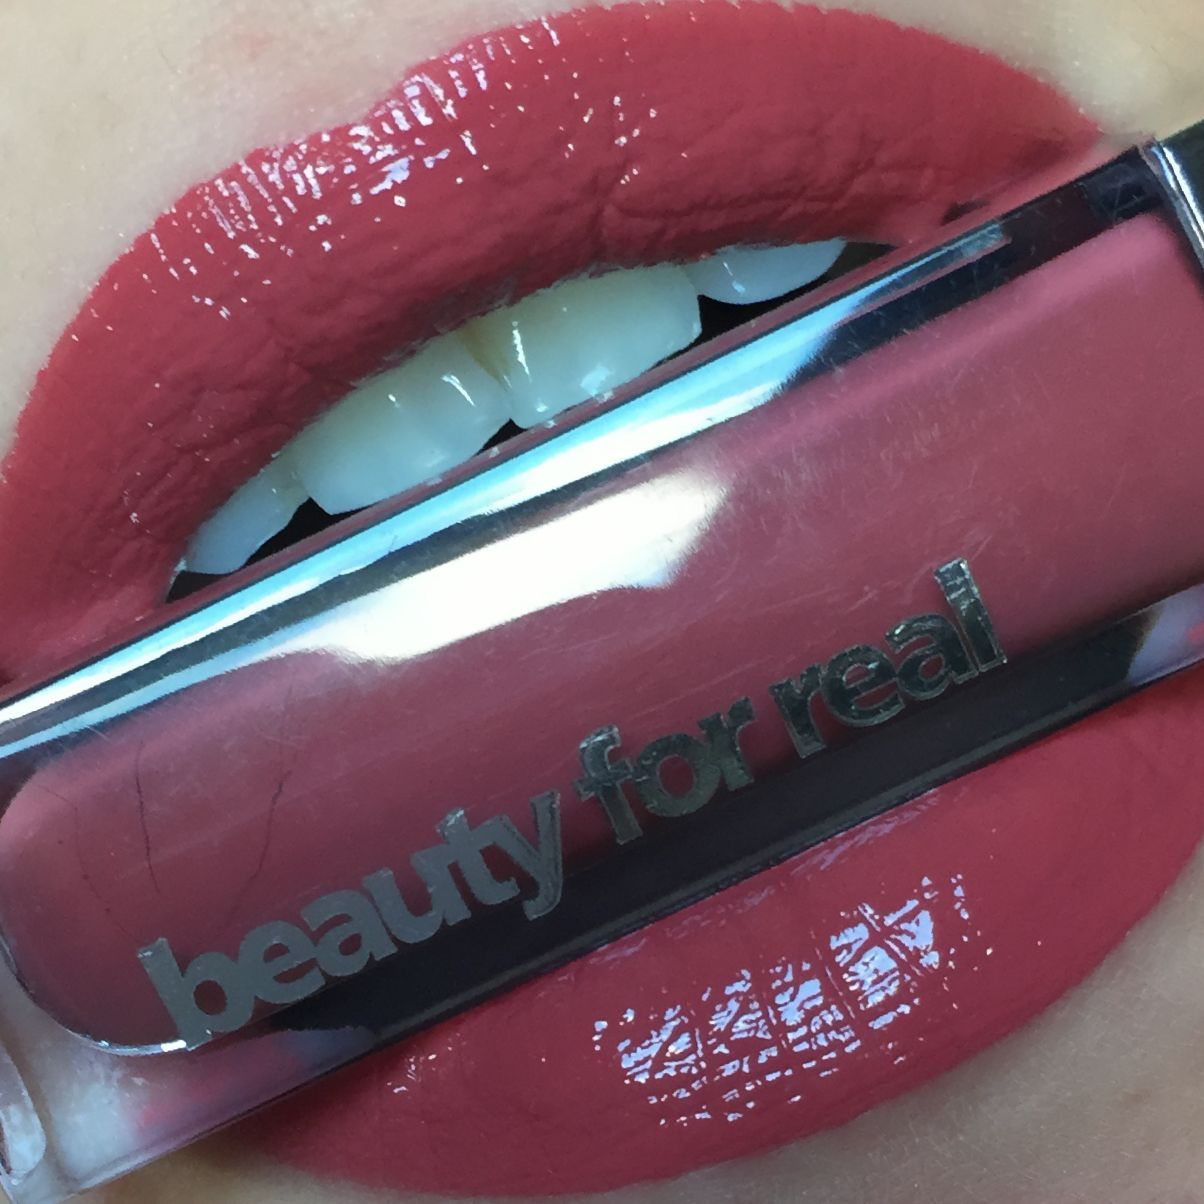 Beauty For Real Lip Cream Always There Lips Swatch Makeup Make Over Lipswatch Lipstickswatch